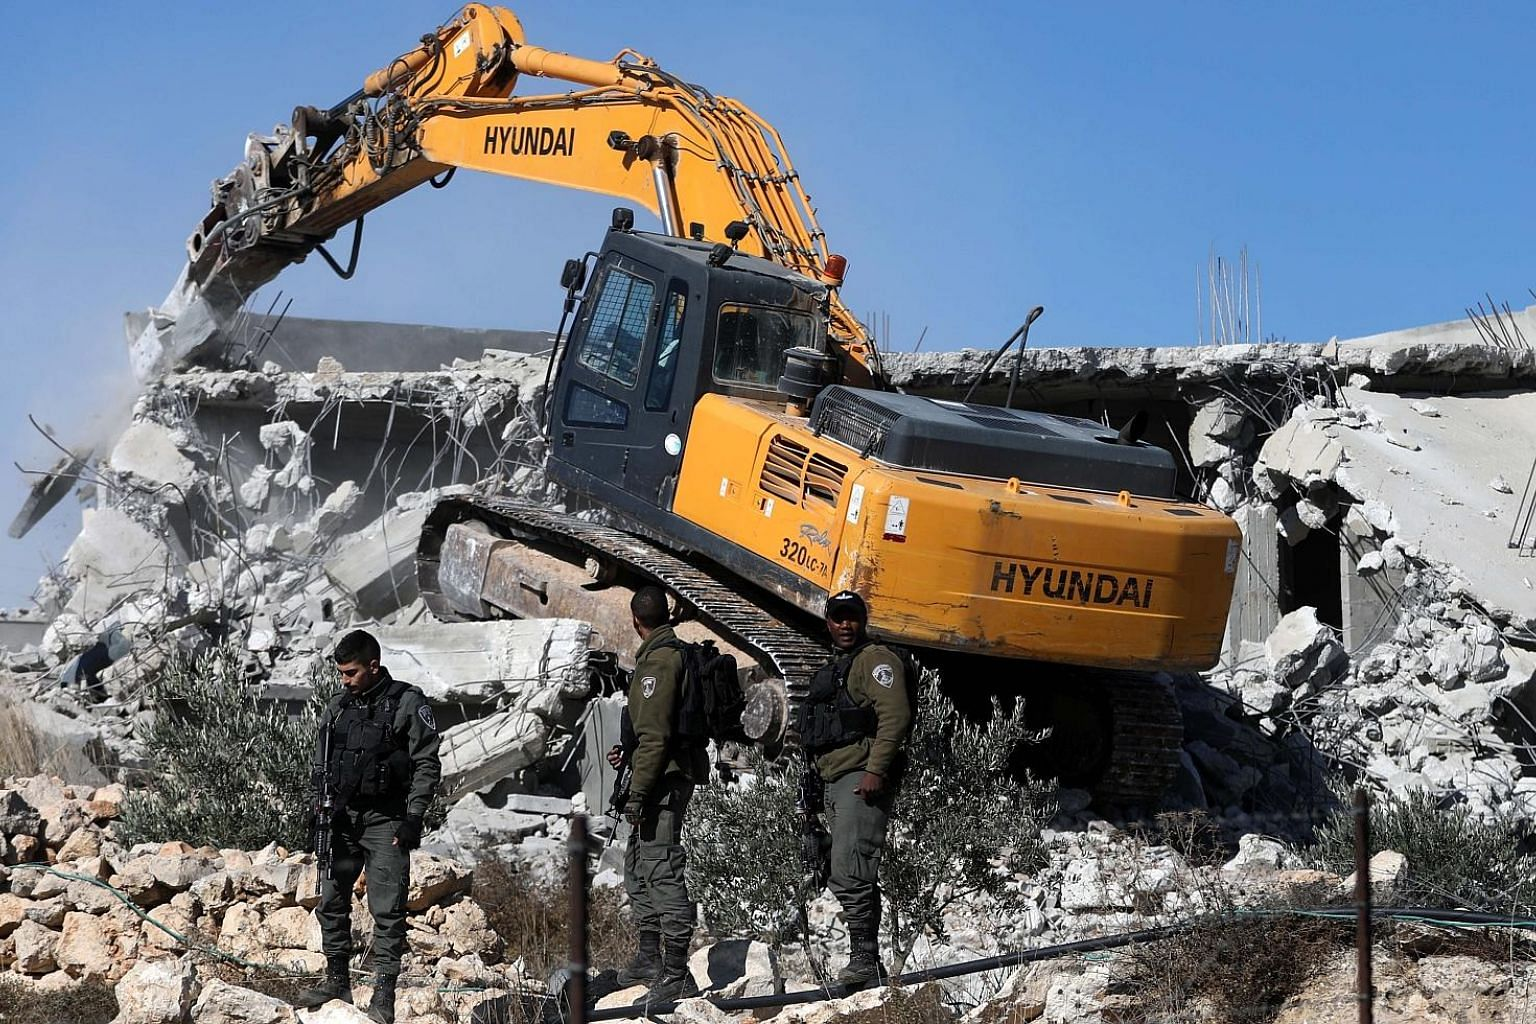 Israeli troops standing guard as bulldozers demolished two houses near Arroub refugee camp north of the West Bank city of Hebron, yesterday. Israel on a regular basis demolishes Palestinians' houses in the West Bank citing missing building permits. P